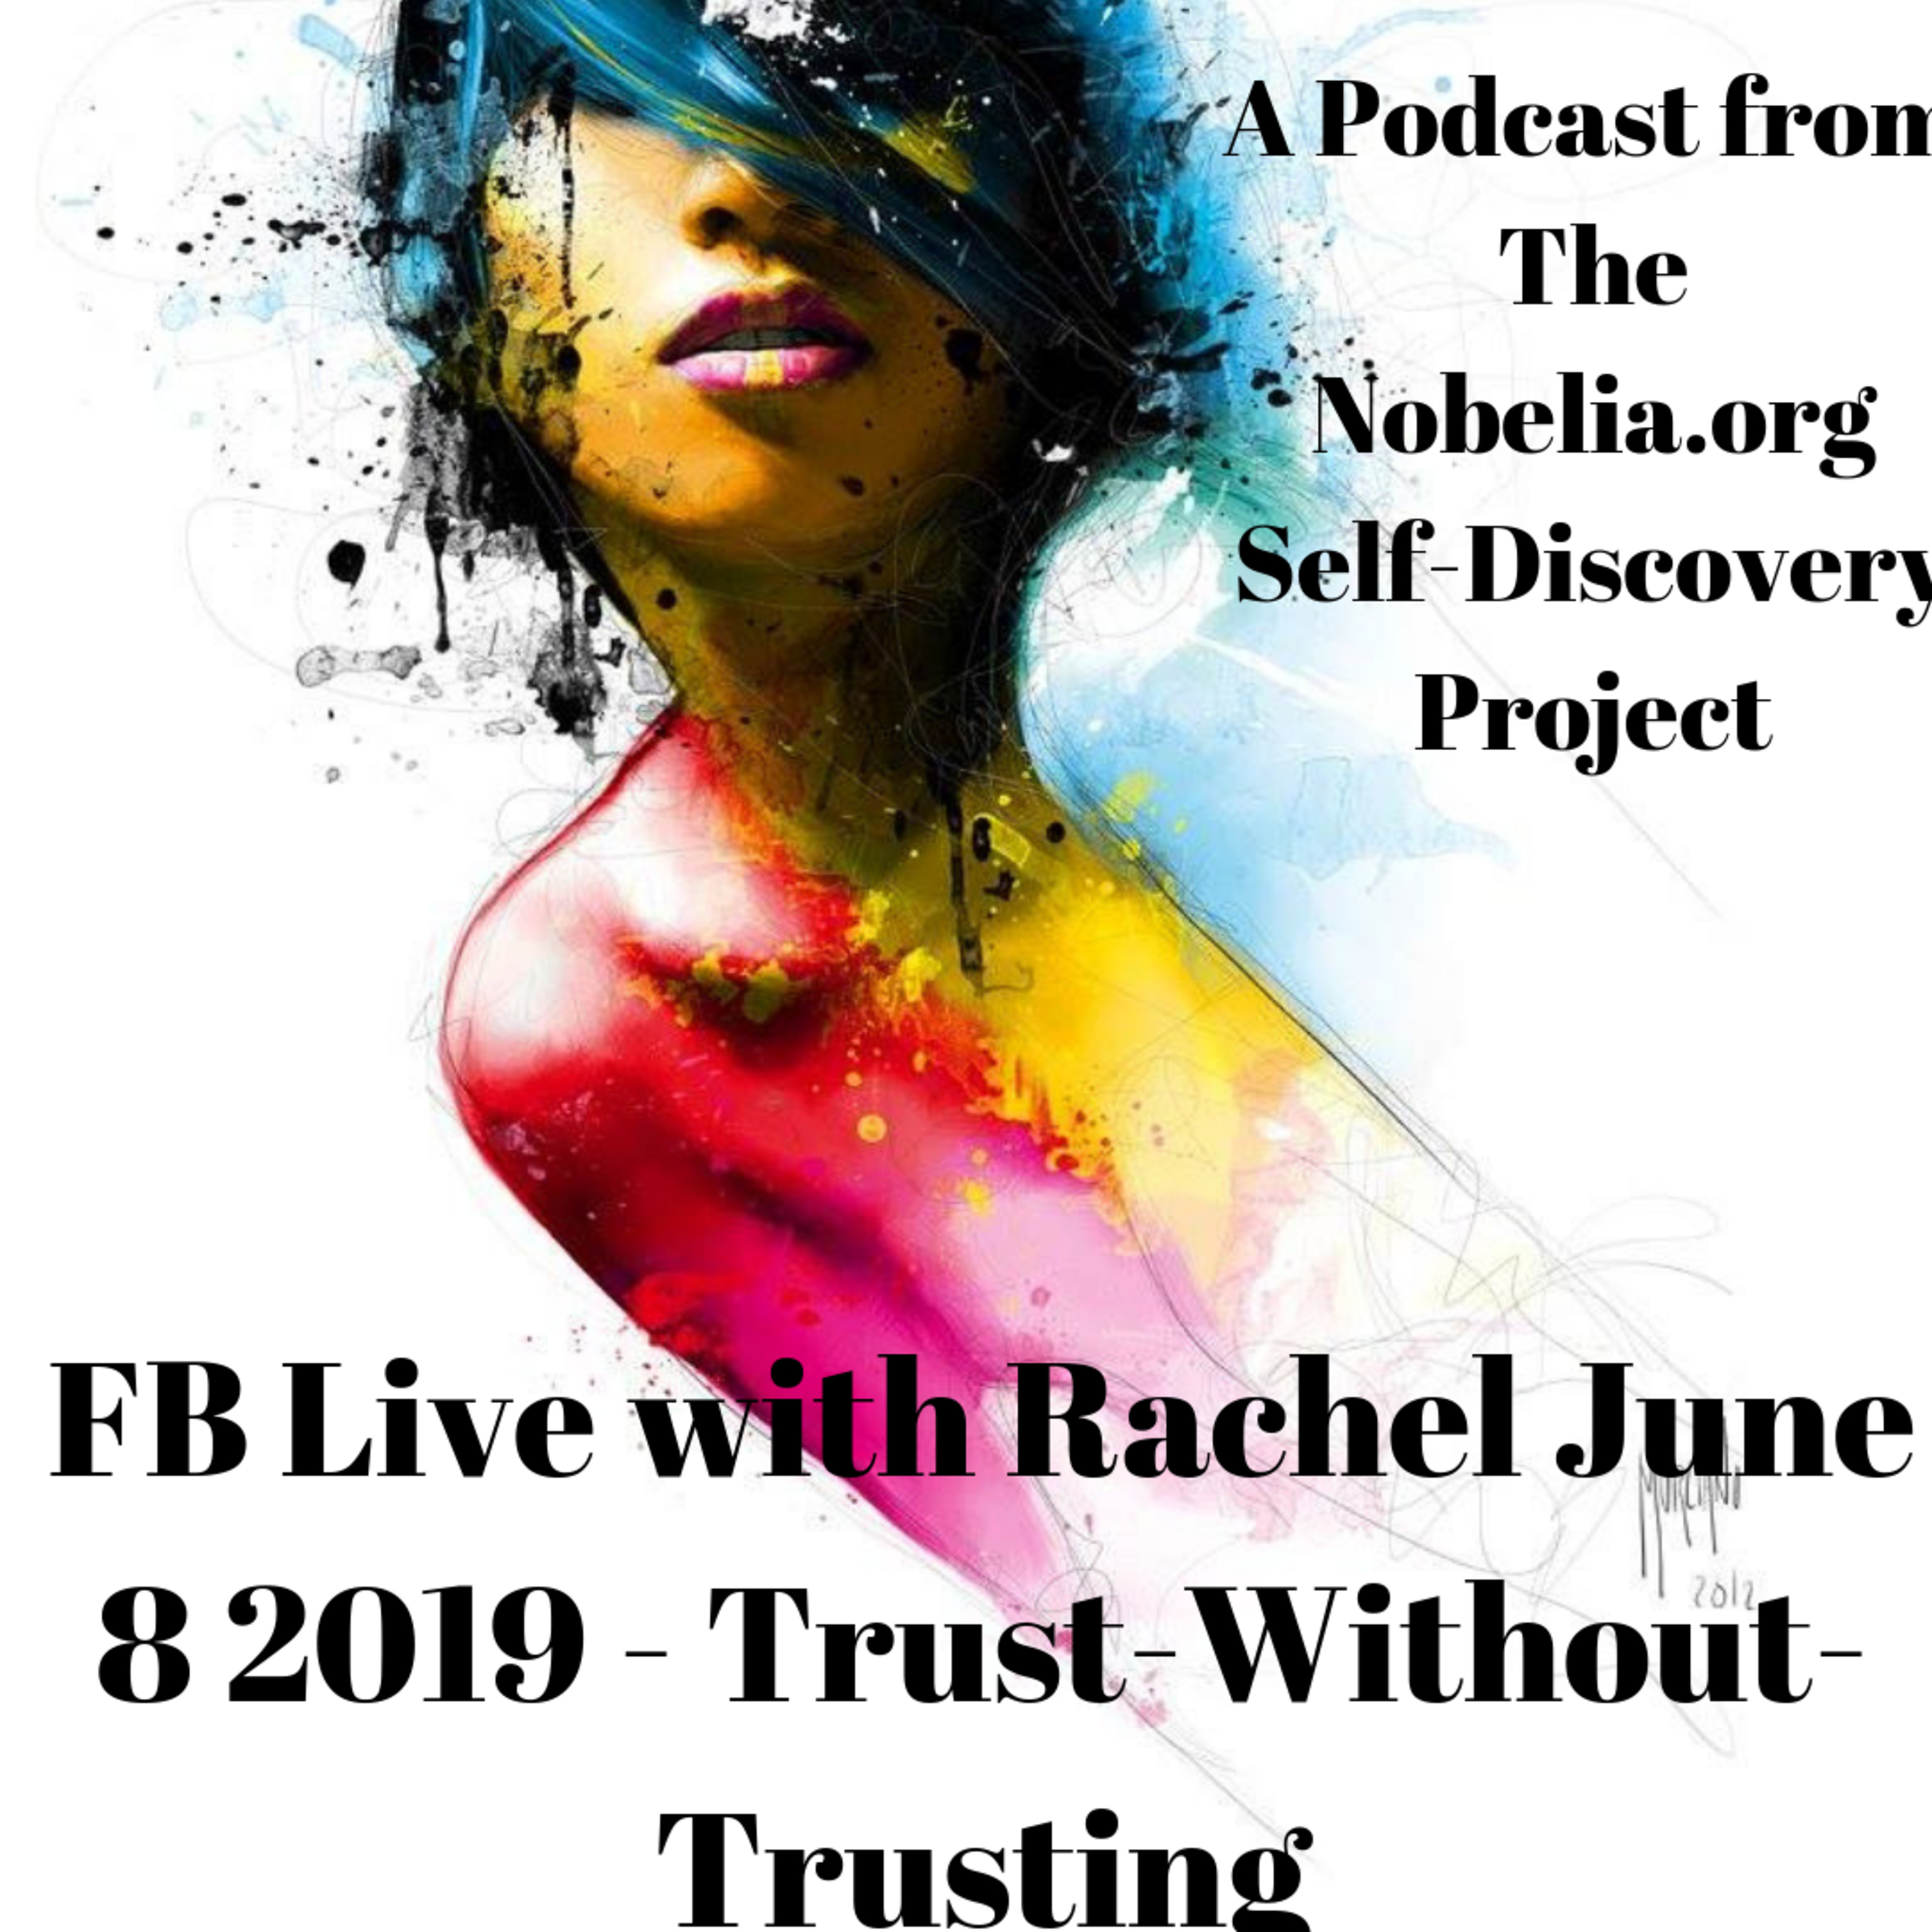 FB Live with Rachel June 8 2019 - Trust-Without-Trusting